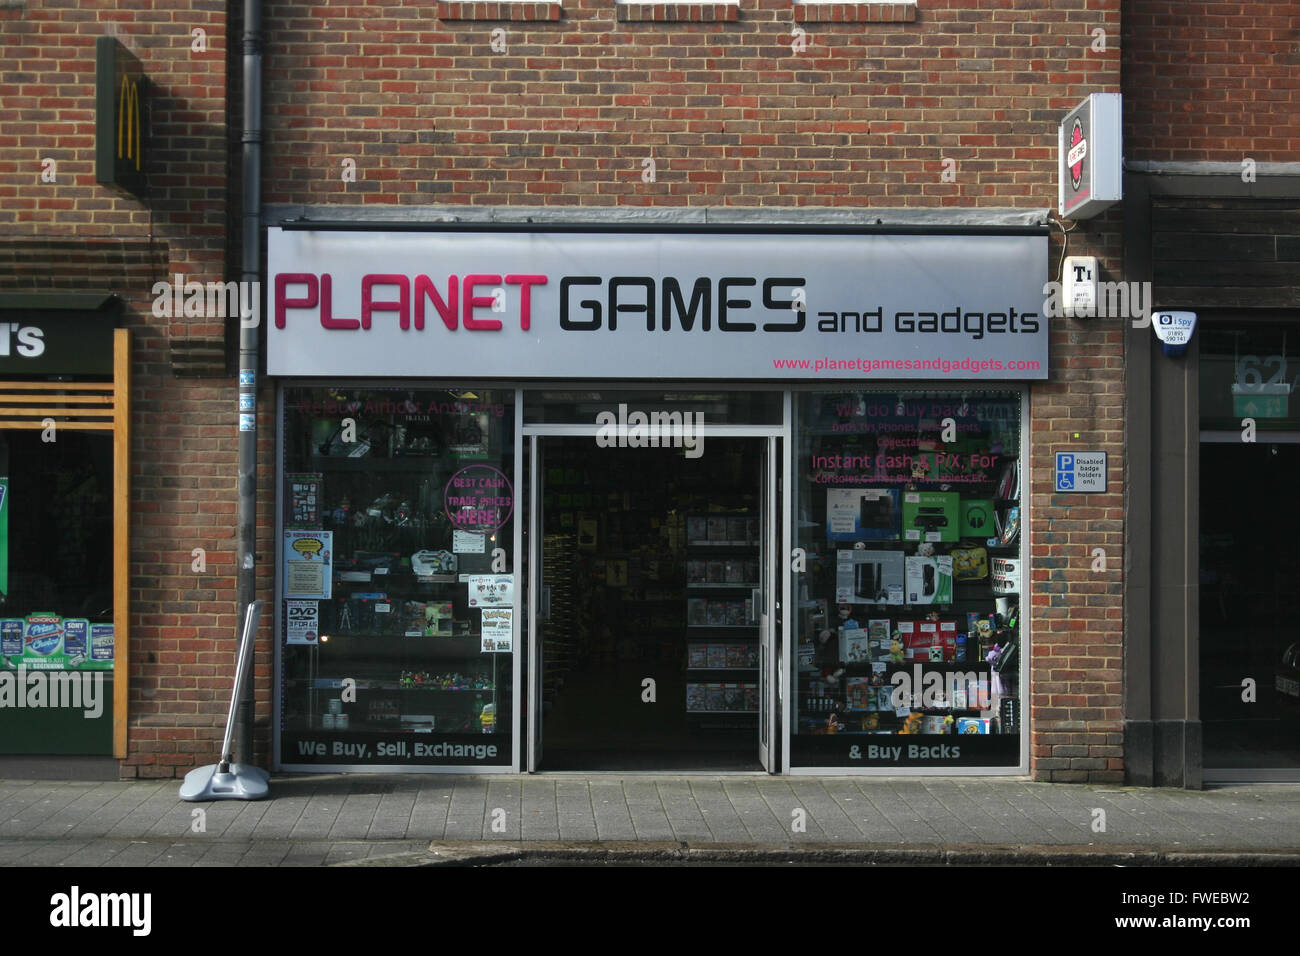 PLANET GAMES SHOP FRONT - Stock Image